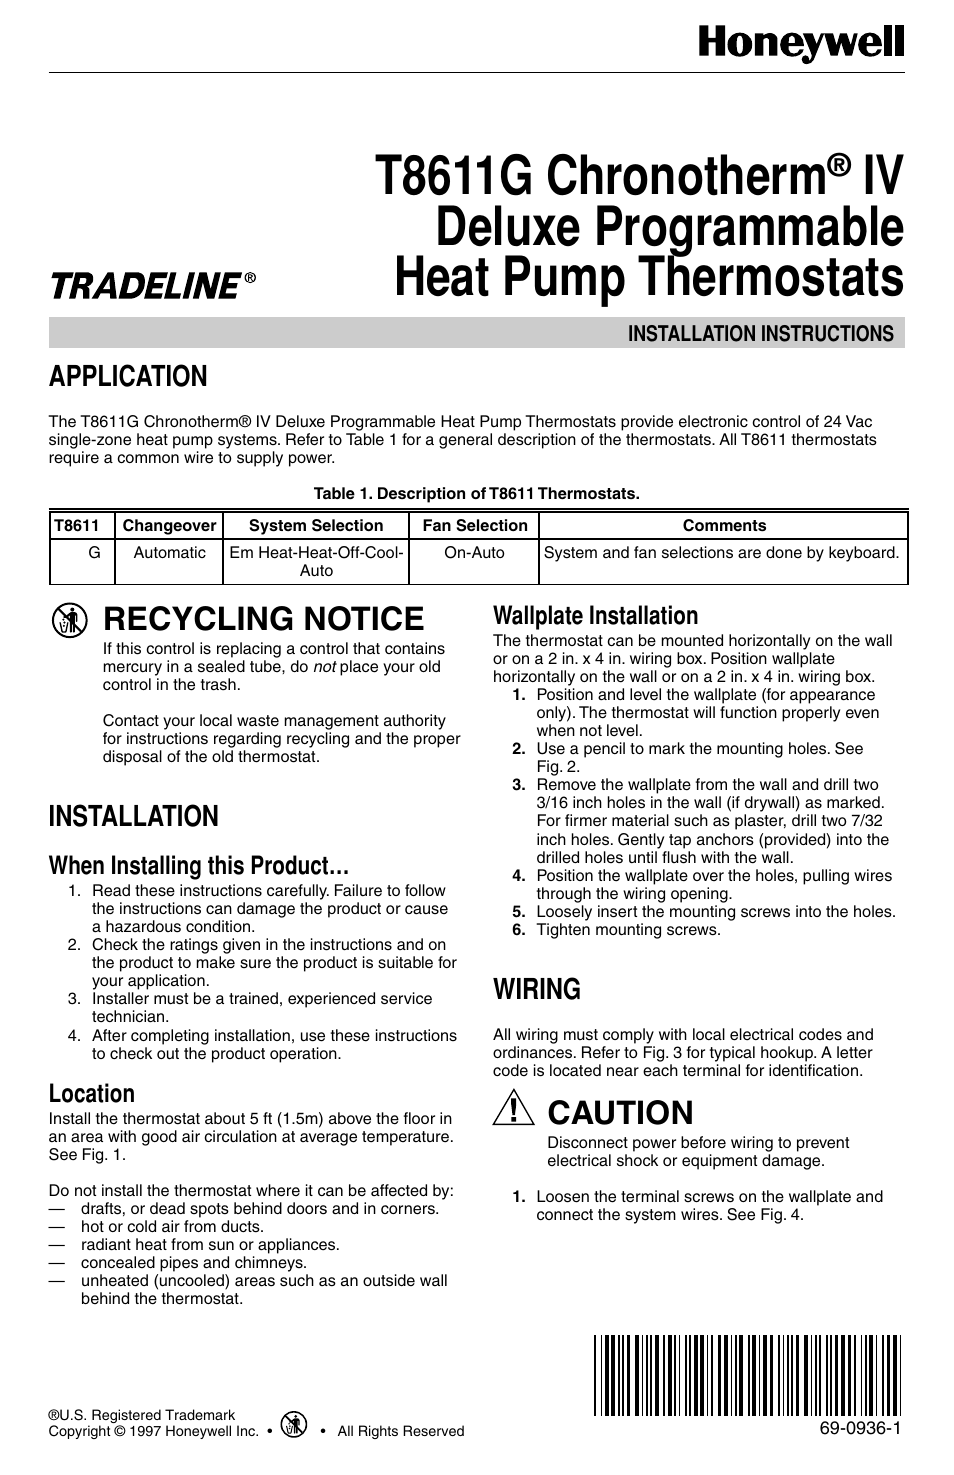 Honeywell T8611g Thermostat Wiring Diagram Portal R845a Zones 2 Diy Enthusiasts Chronotherm Iv User Manual 12 Pages Rh Manualsdir Com Heat Pump